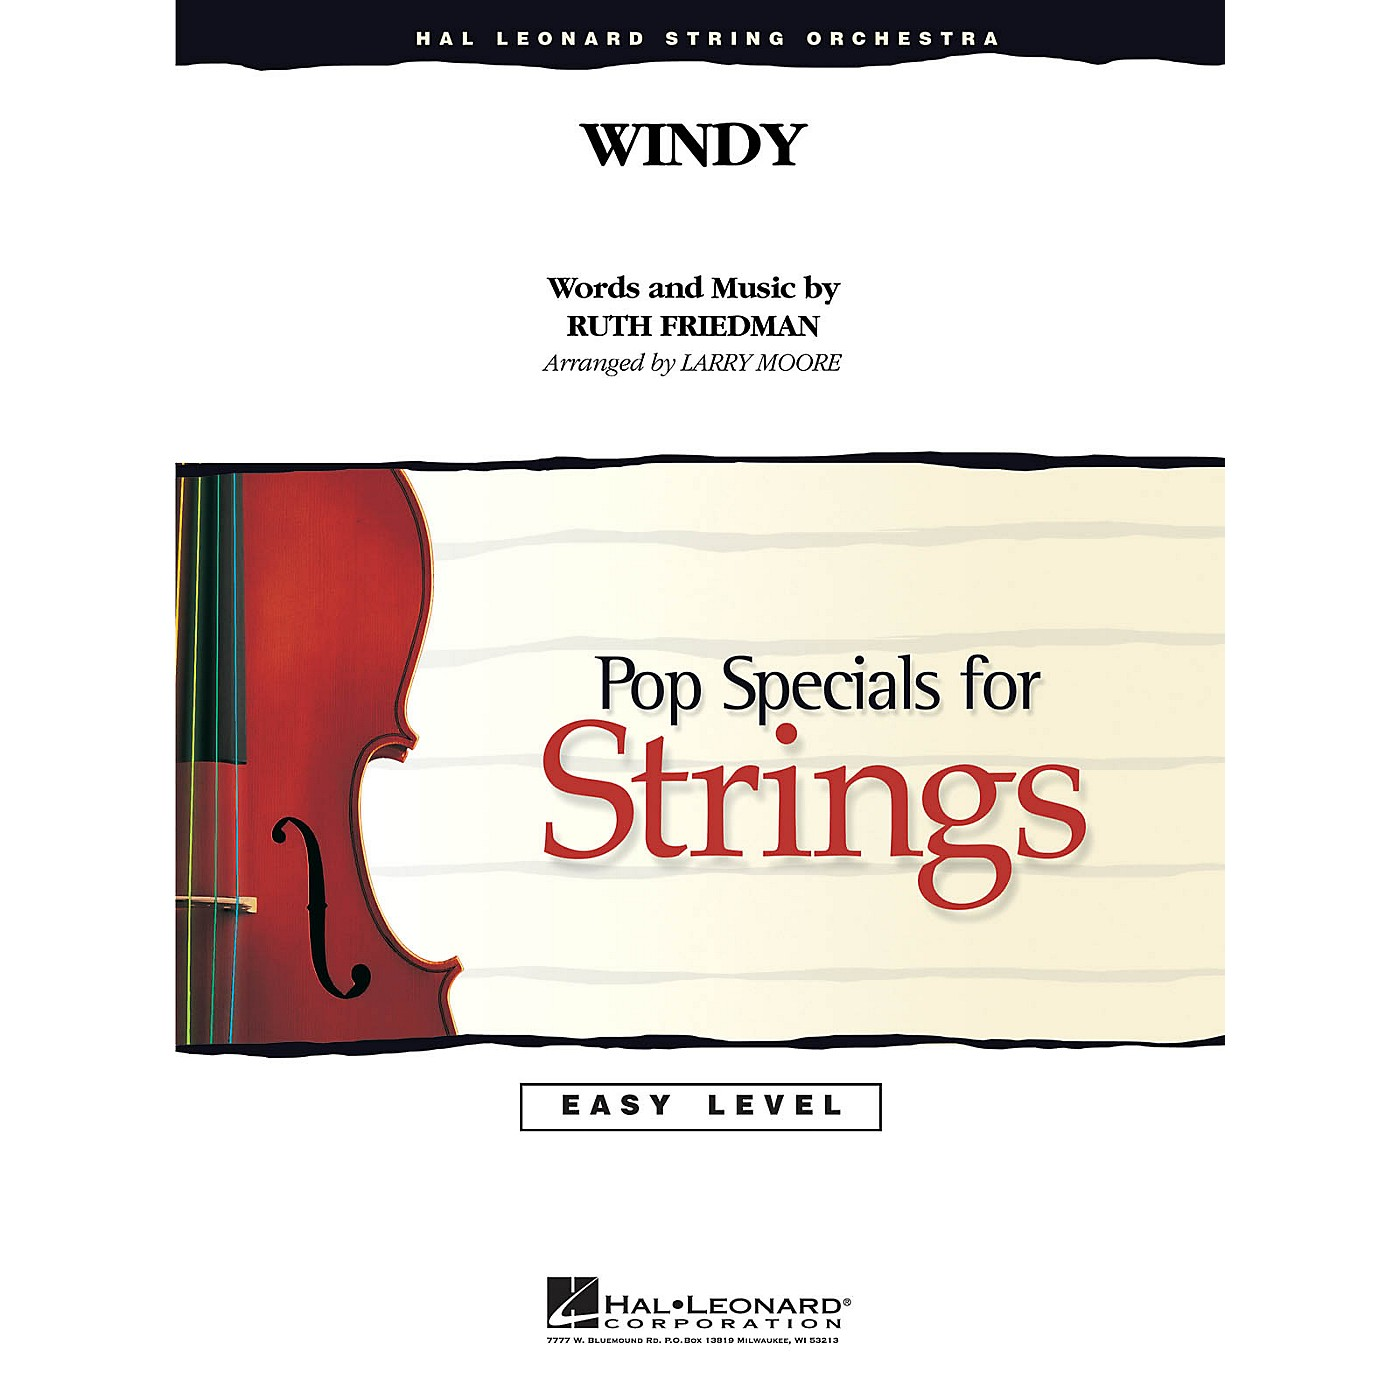 Hal Leonard Windy Easy Pop Specials For Strings Series by The Association Arranged by Larry Moore thumbnail